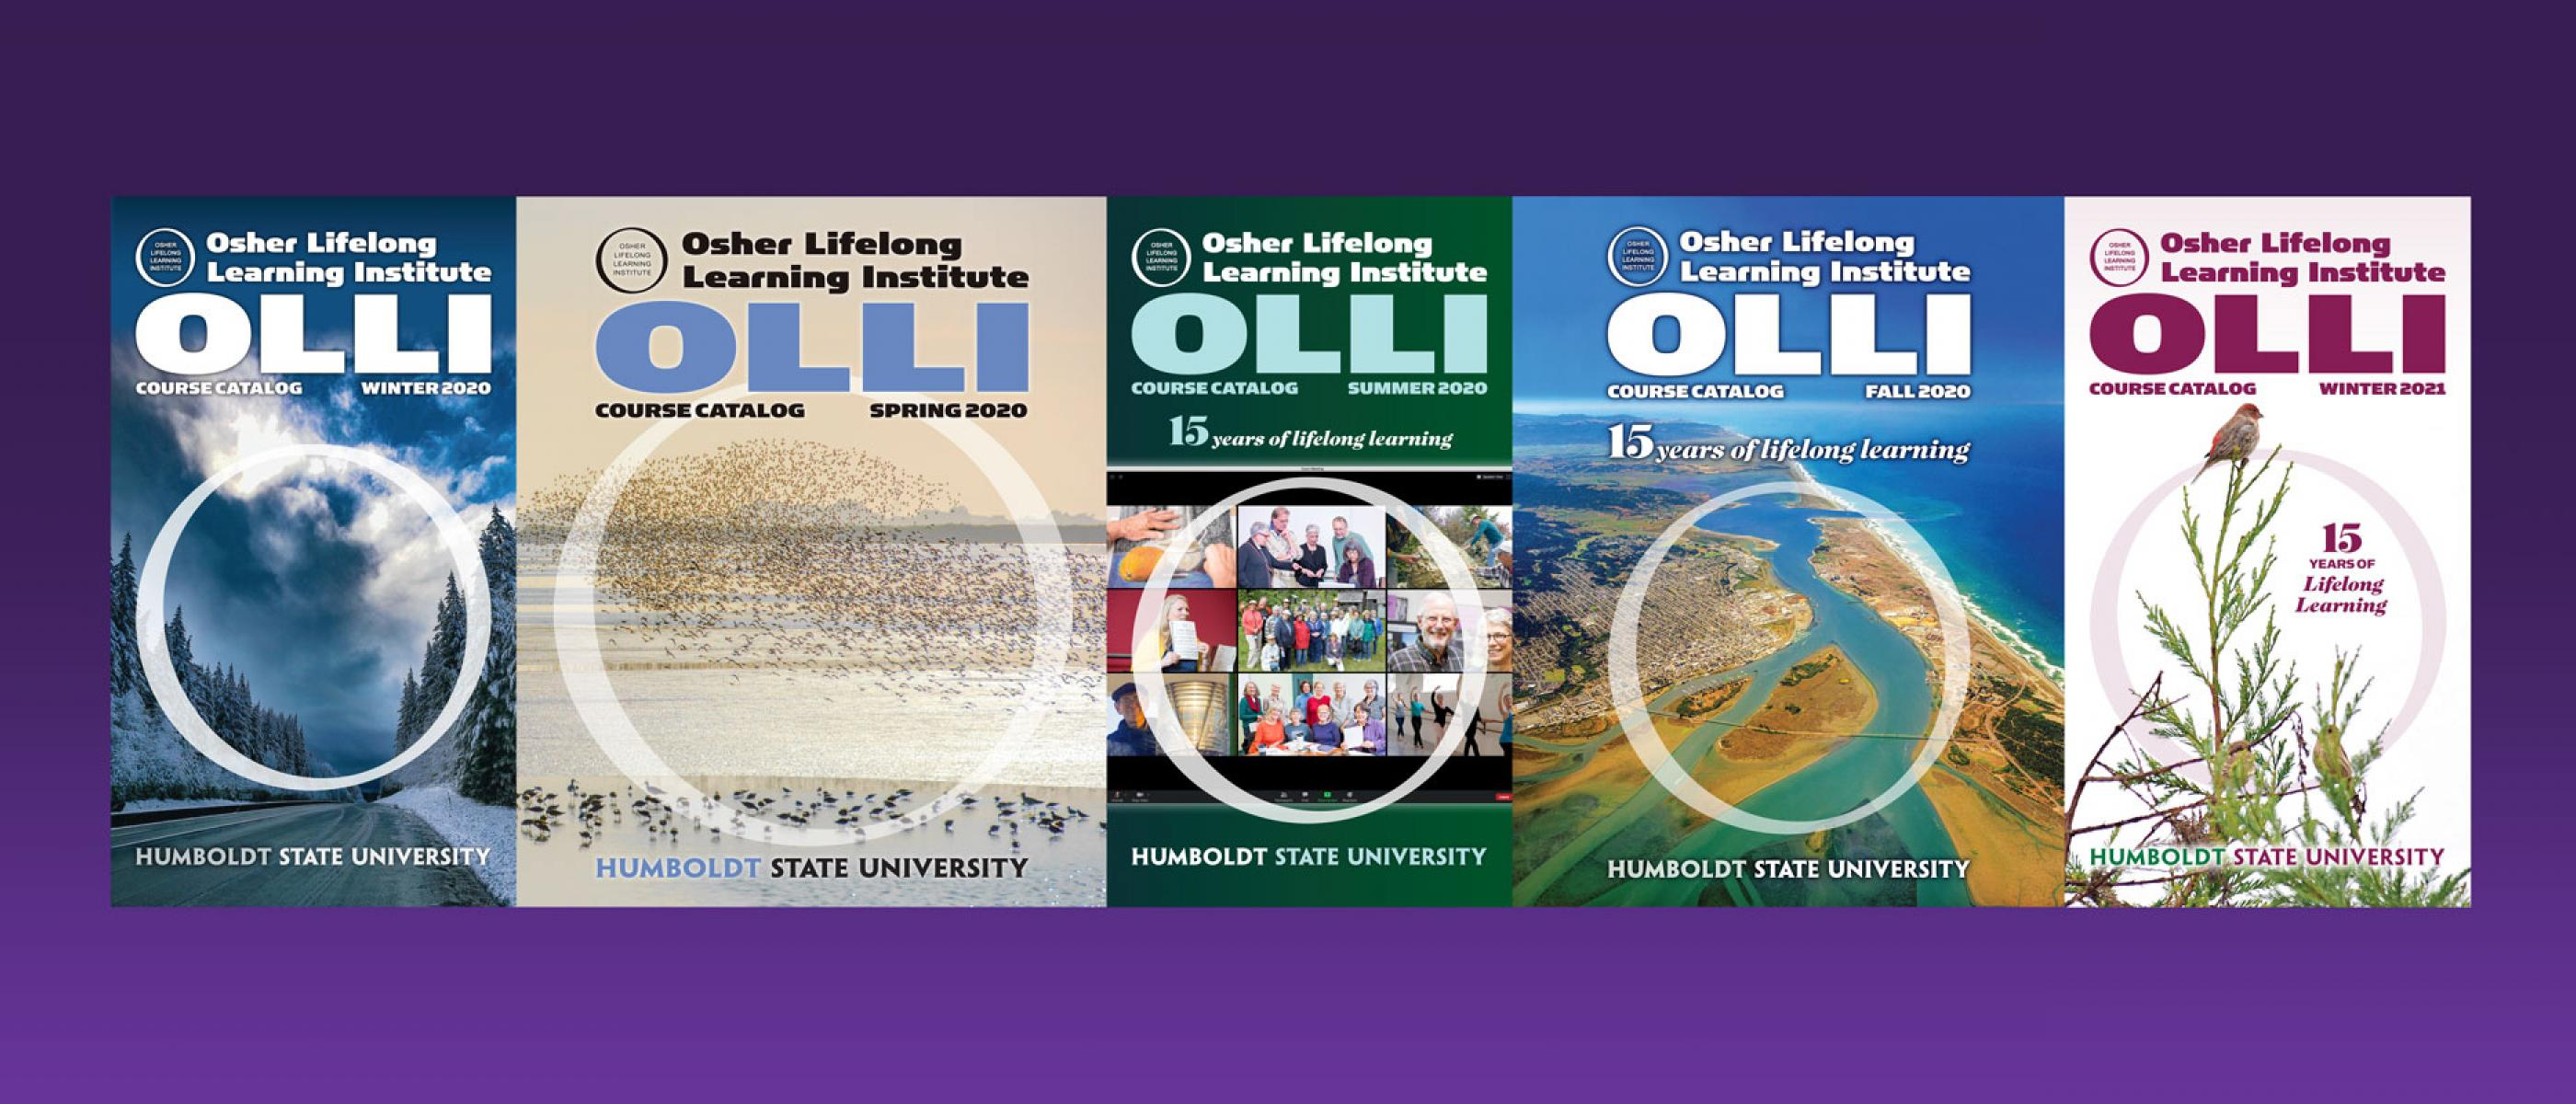 Covers of OLLI course catalogs over the past year